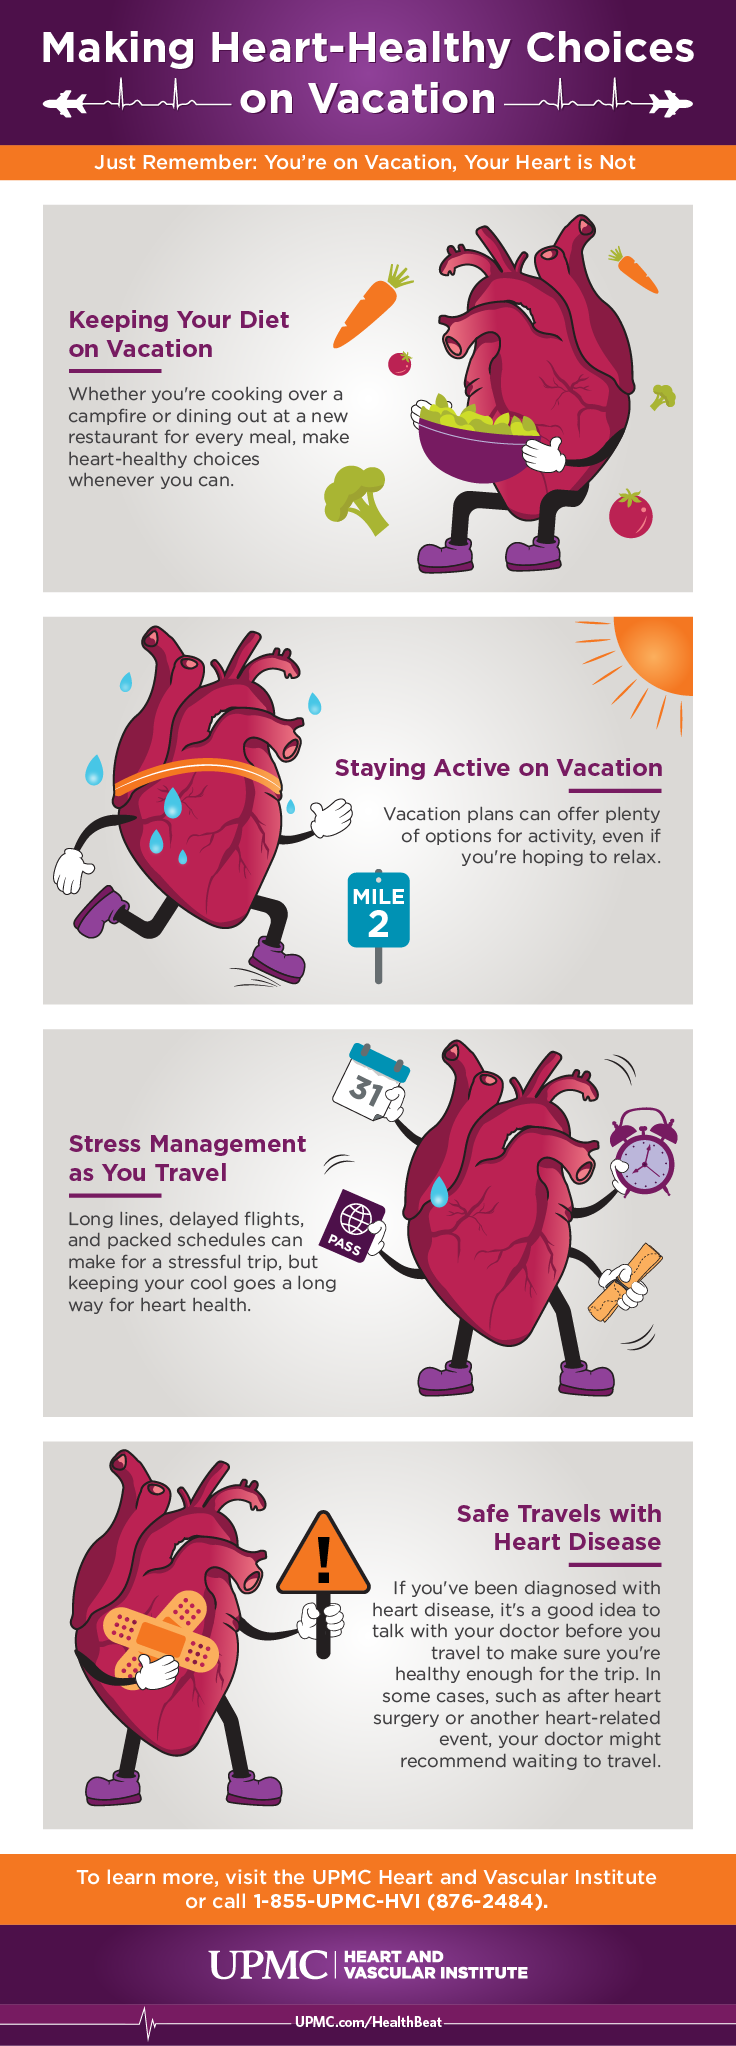 Learn more about staying heart healthy on vacation